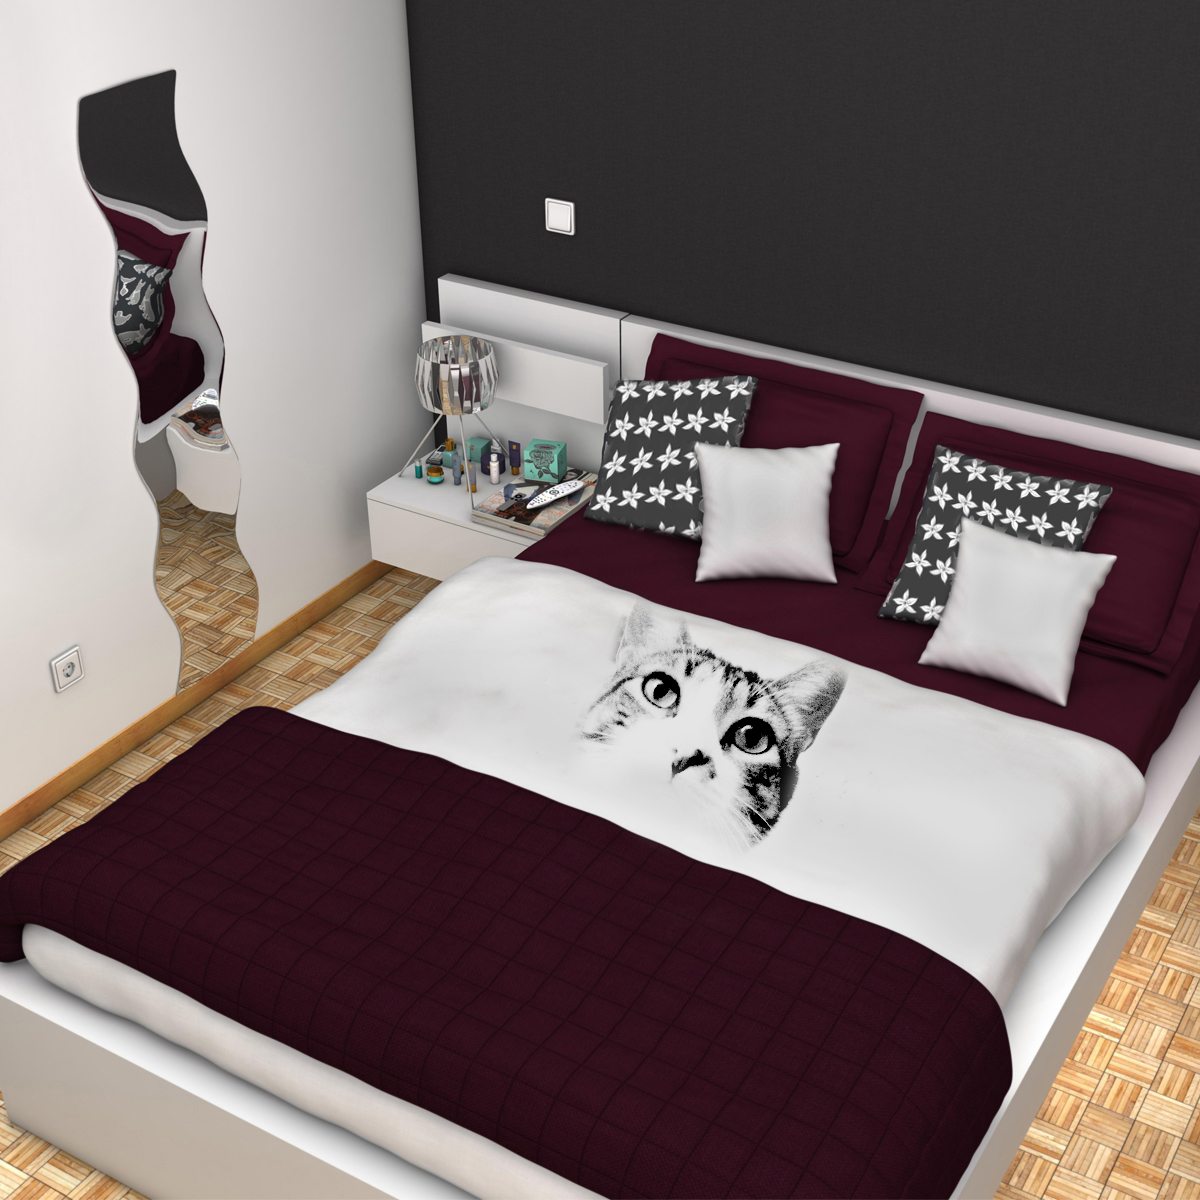 Bedroom 3d model 3ds max fbx c4d ma mb obj 159552